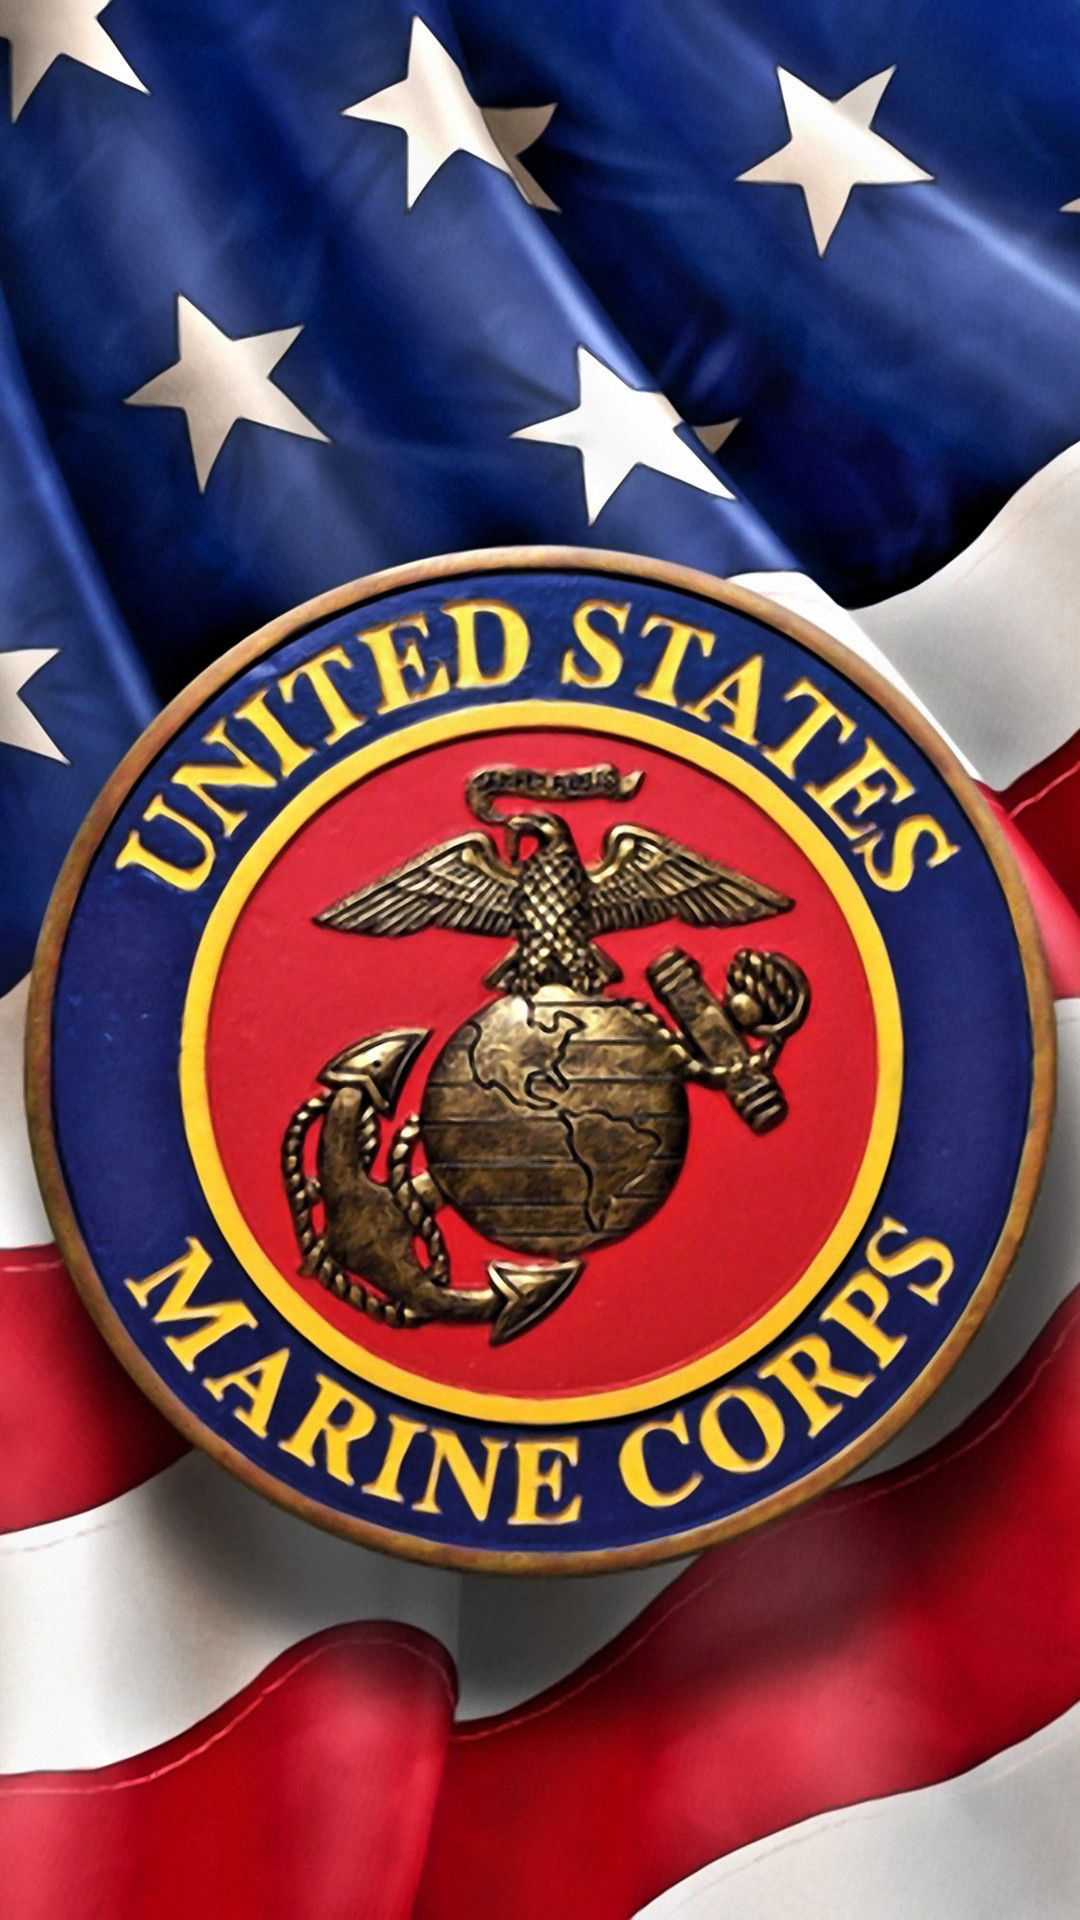 Usmc Wallpaper Marine Corps - Marine Corps Background Png , HD Wallpaper & Backgrounds